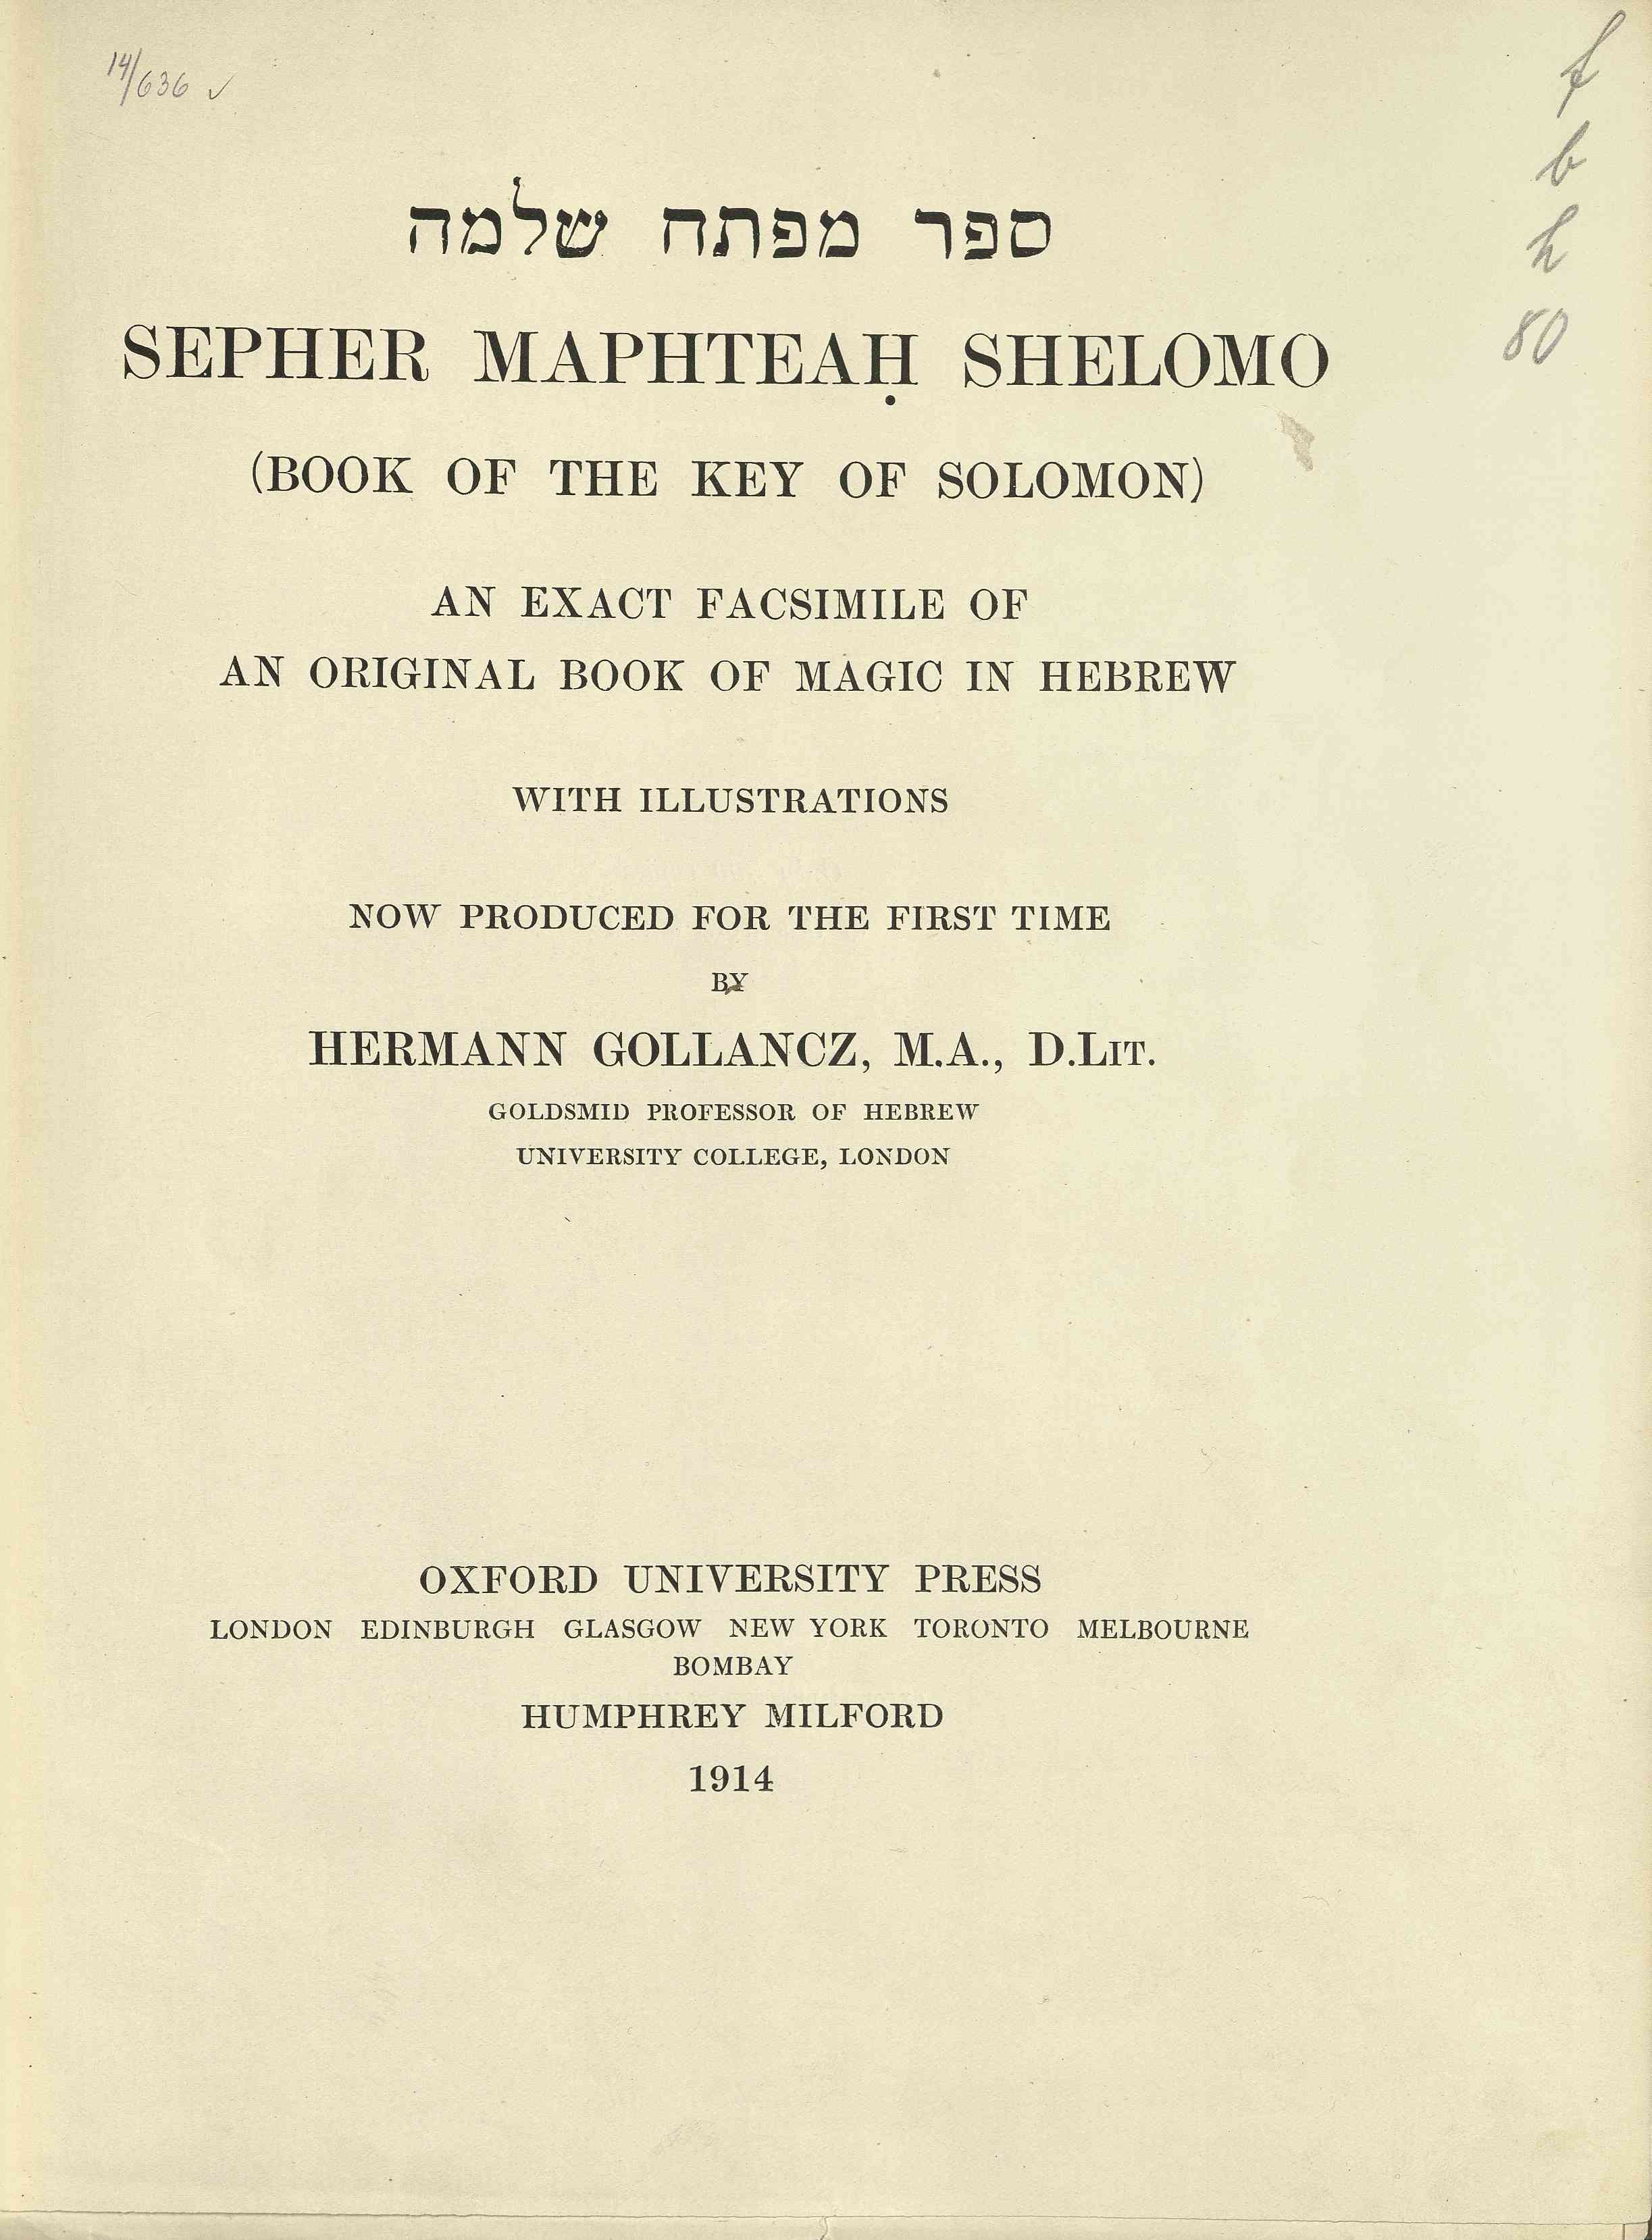 Sėpher Maphteah Shelomo (Book of the Key of Solomon)